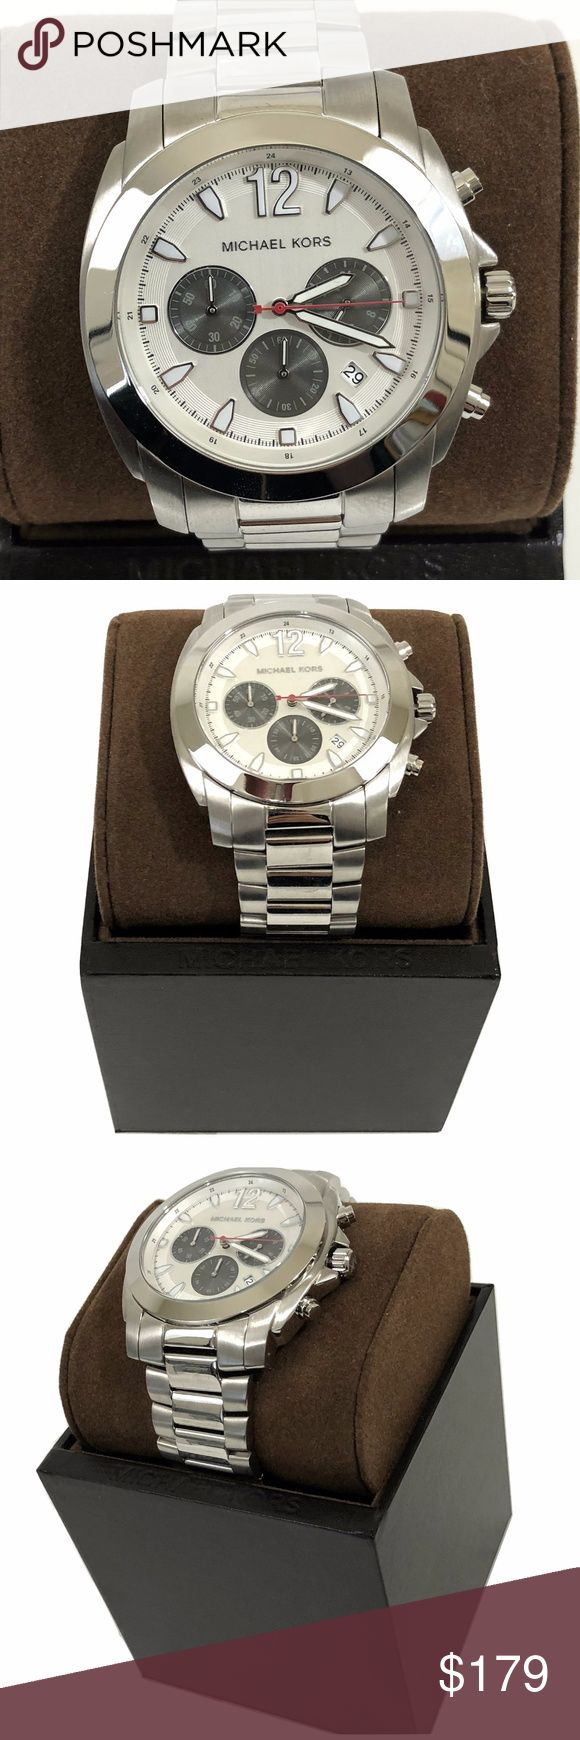 NWT Cameron Silver Stainless Steel Watch MK8242 ***100% GUARANTEED AUTHENTIC OR YOUR MONEY BACK!***  NEW WITH TAG Dial Window Material Type : Mineral; Display Type : Analog Clasp : Fold Over Clasp; Case Material : Stainless Steel Case Diameter : 42 millimeters; Case Thickness : 12 millimeters Bezel Material : Stainless Steel; Bexel Function : Stationary Calendar : Date; Special Features : Chronograph Movement : Analog Quartz; Color: Silver Water Resistant Depth : 350 Meters Michael Kors box…